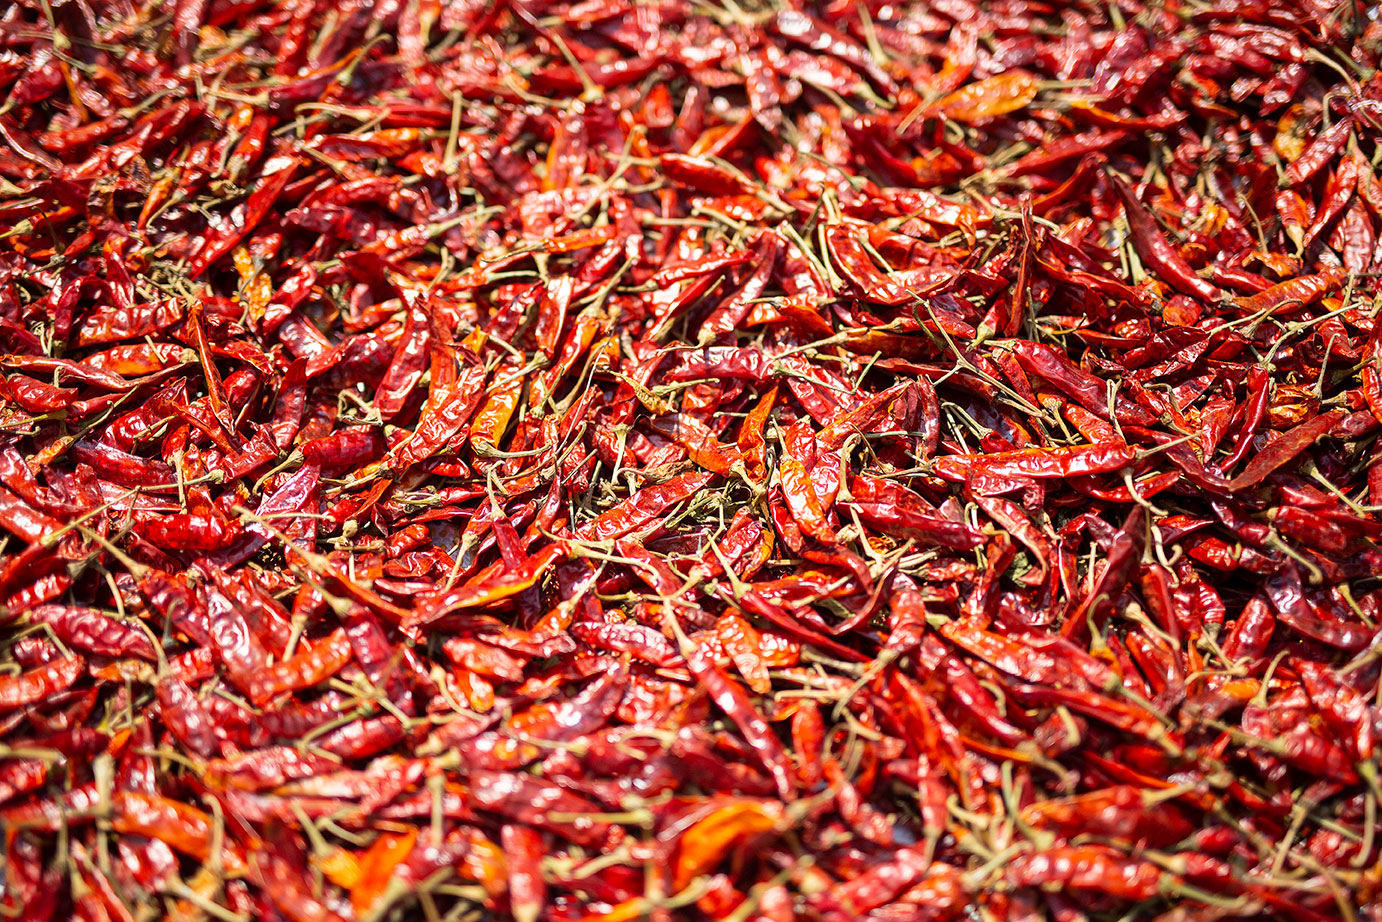 dried_chillies.jpg